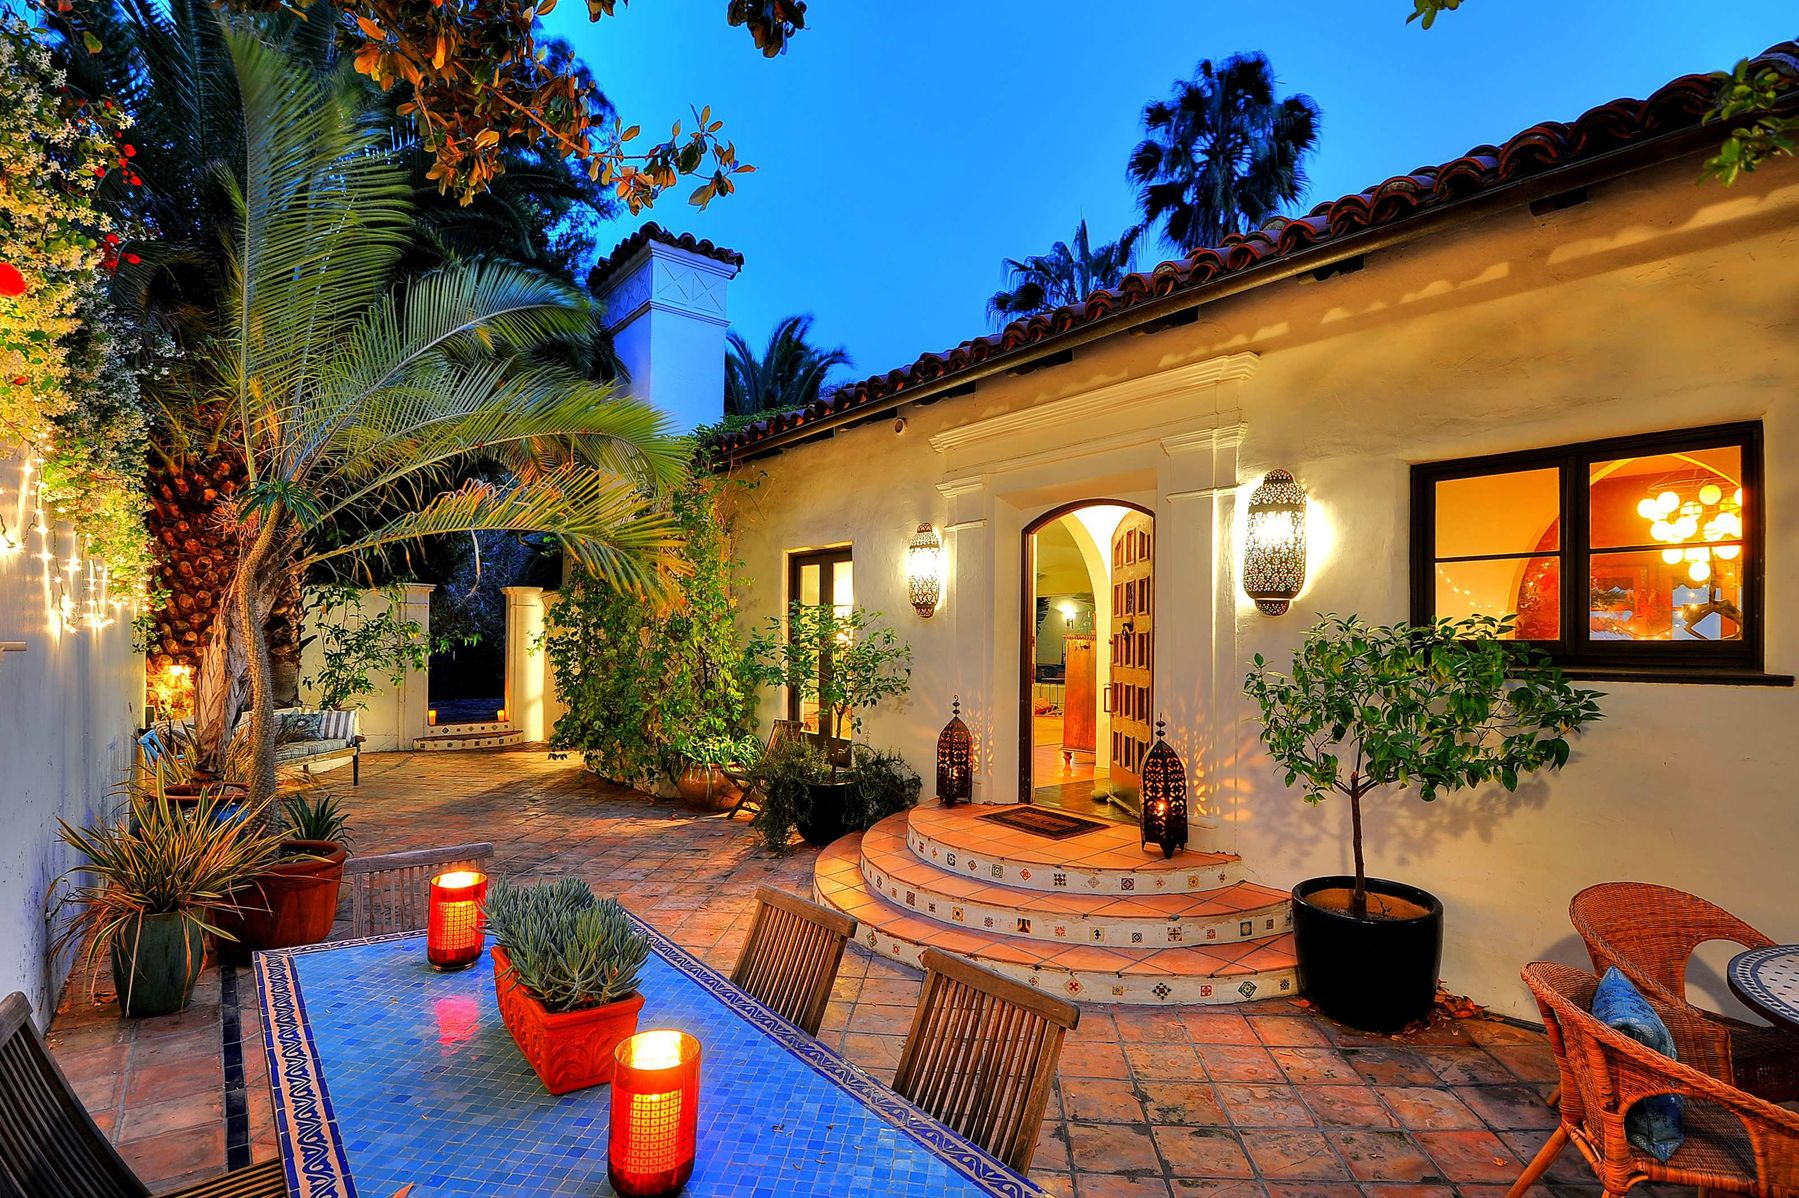 Mediterranean patio design by los angeles design build hartmanbaldwin - Love The Lanterns And The Potted Trees Decoration Spanish Style House With Decorative Candles Spanish Style Homes With Its Interior Design